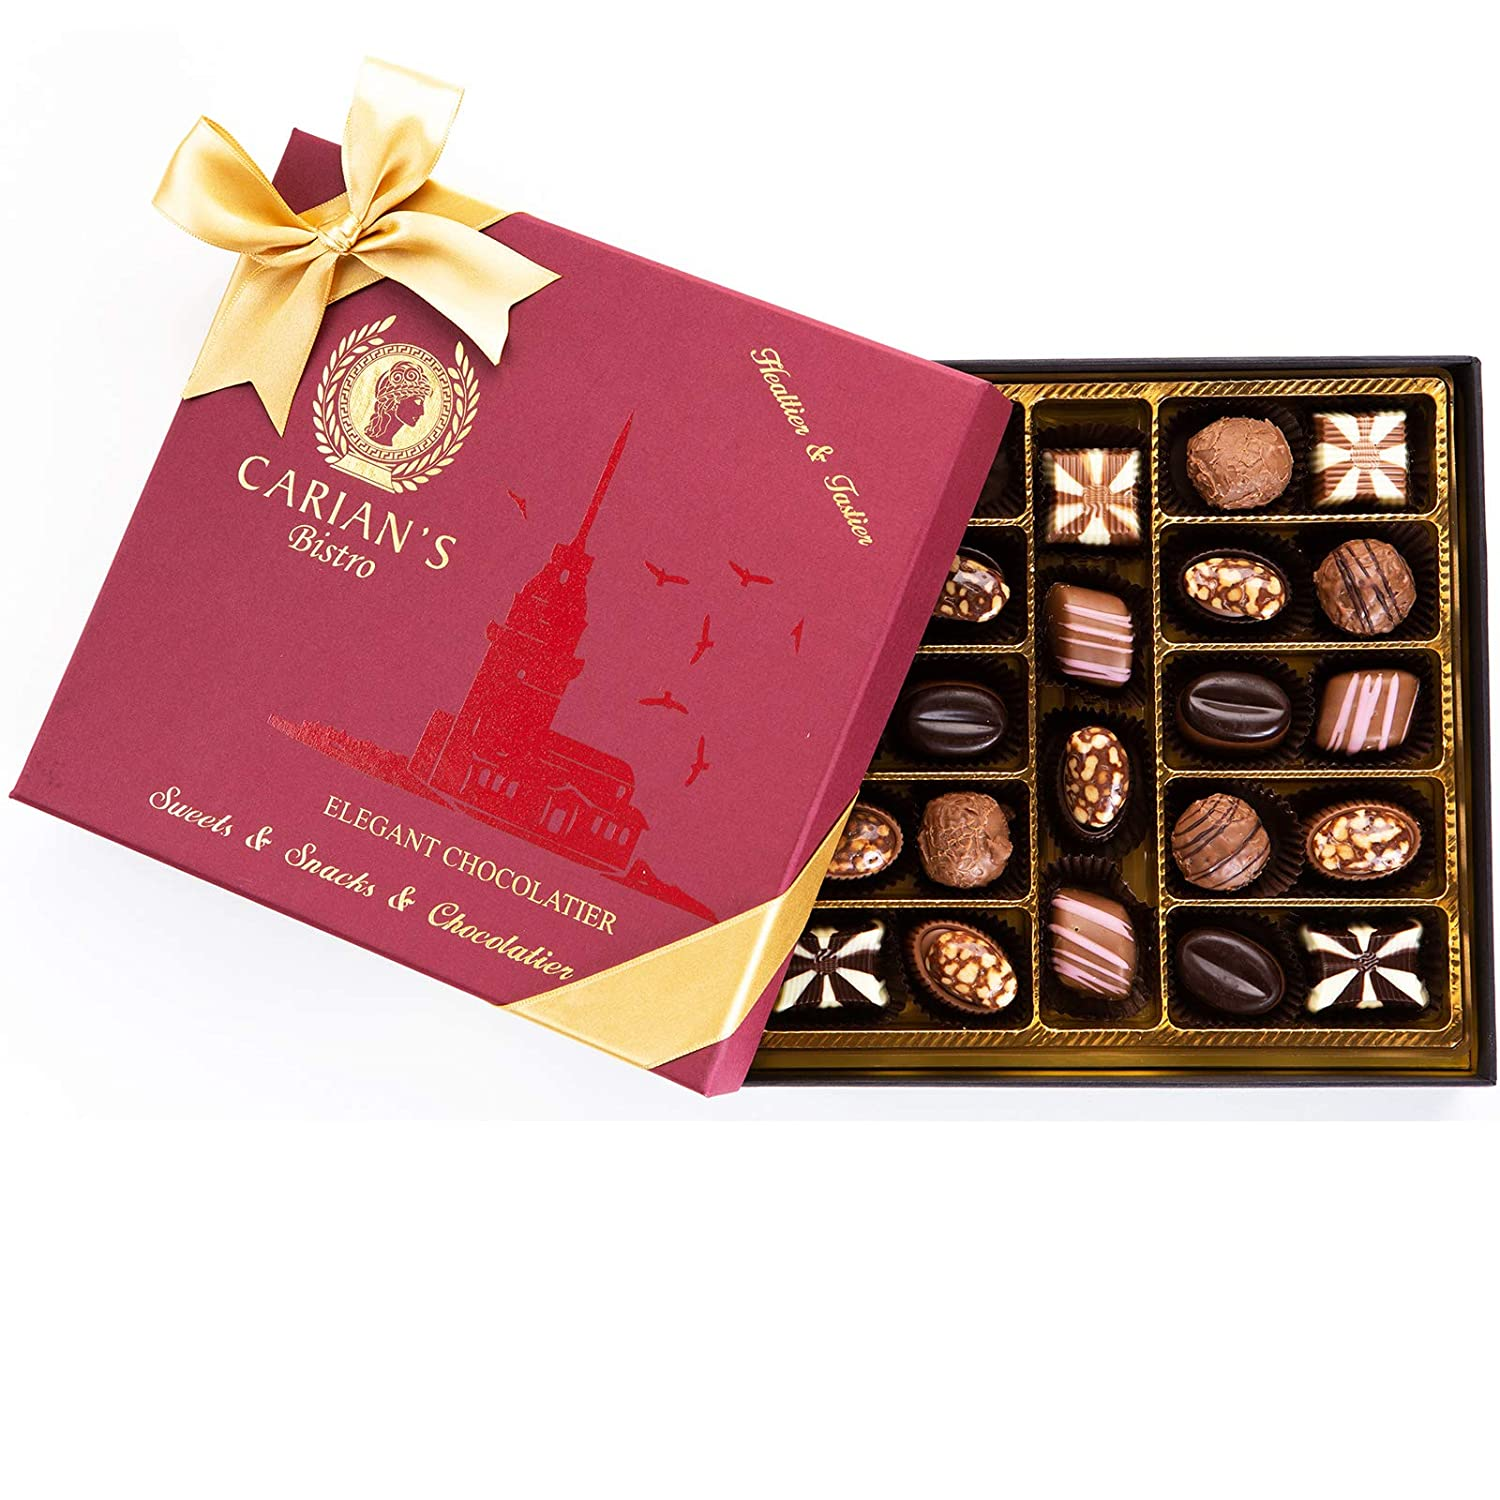 Bistro Chocolate Box Luxury Selection, Premium Assorted Gift for Holiday and Christmas, Gourmet Truffles,Natural and Healthy 71ahJ2B1x2KL